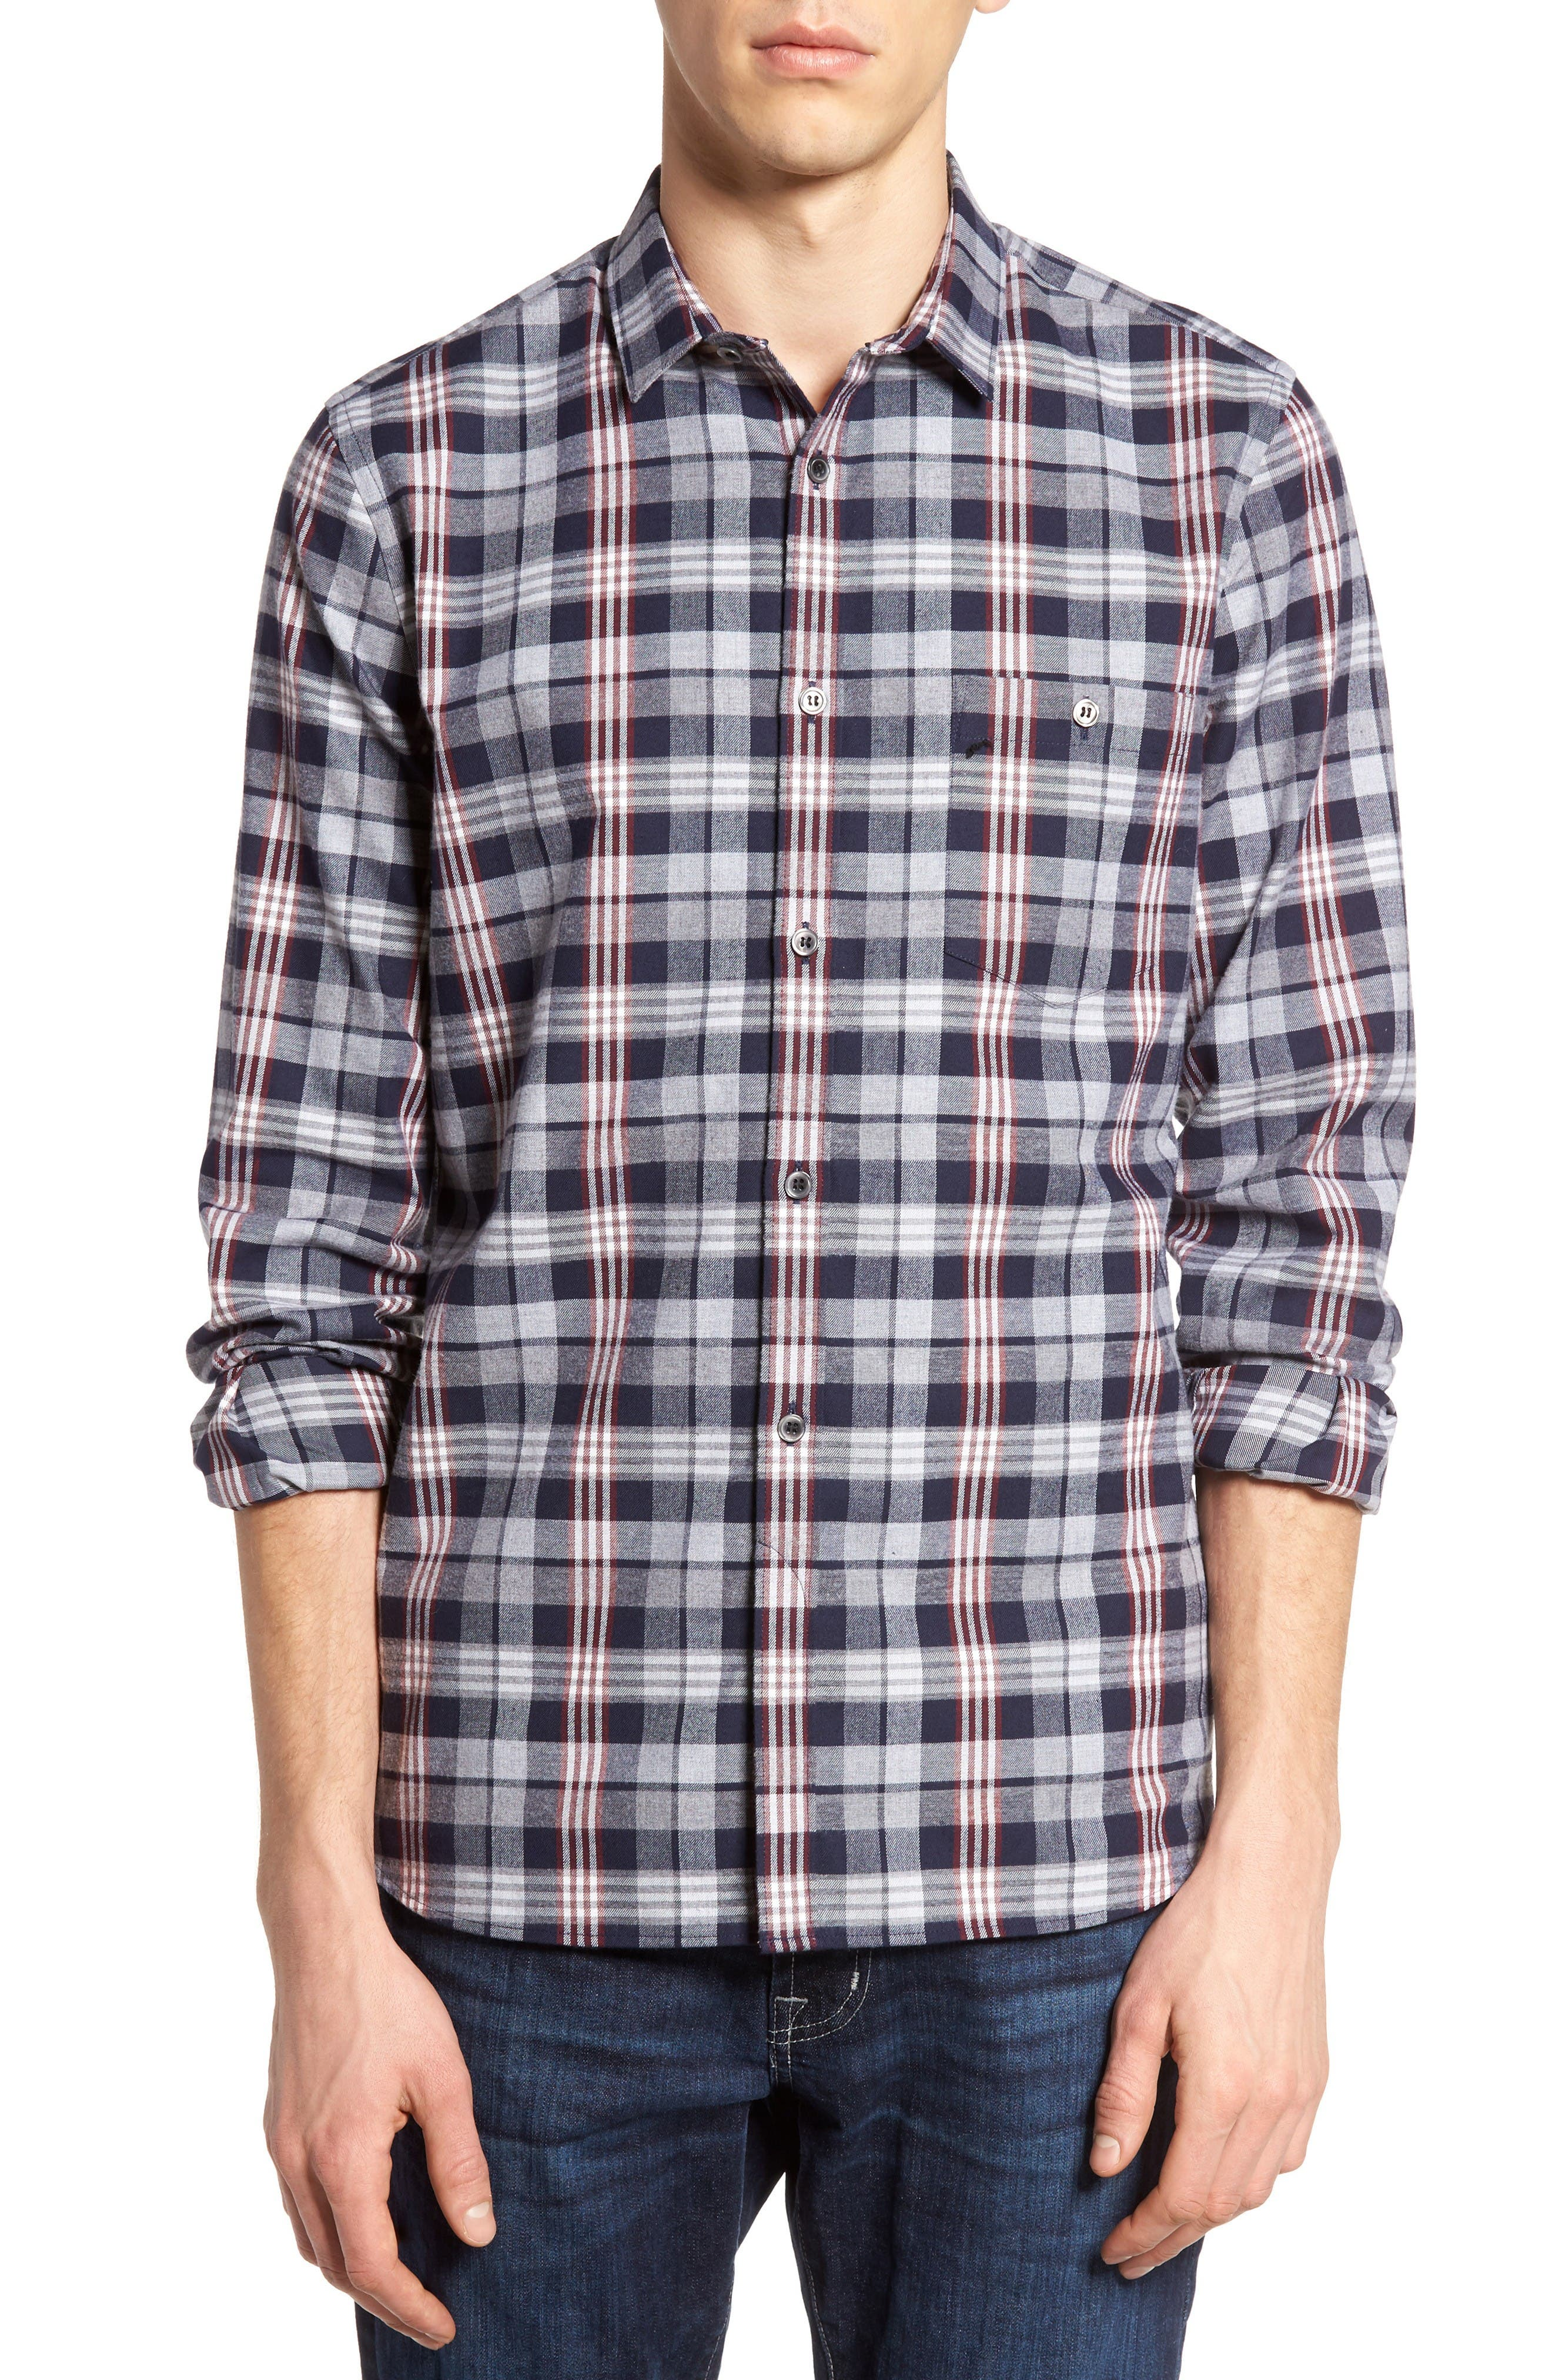 Alternate Image 1 Selected - French Connection Check Twill Shirt